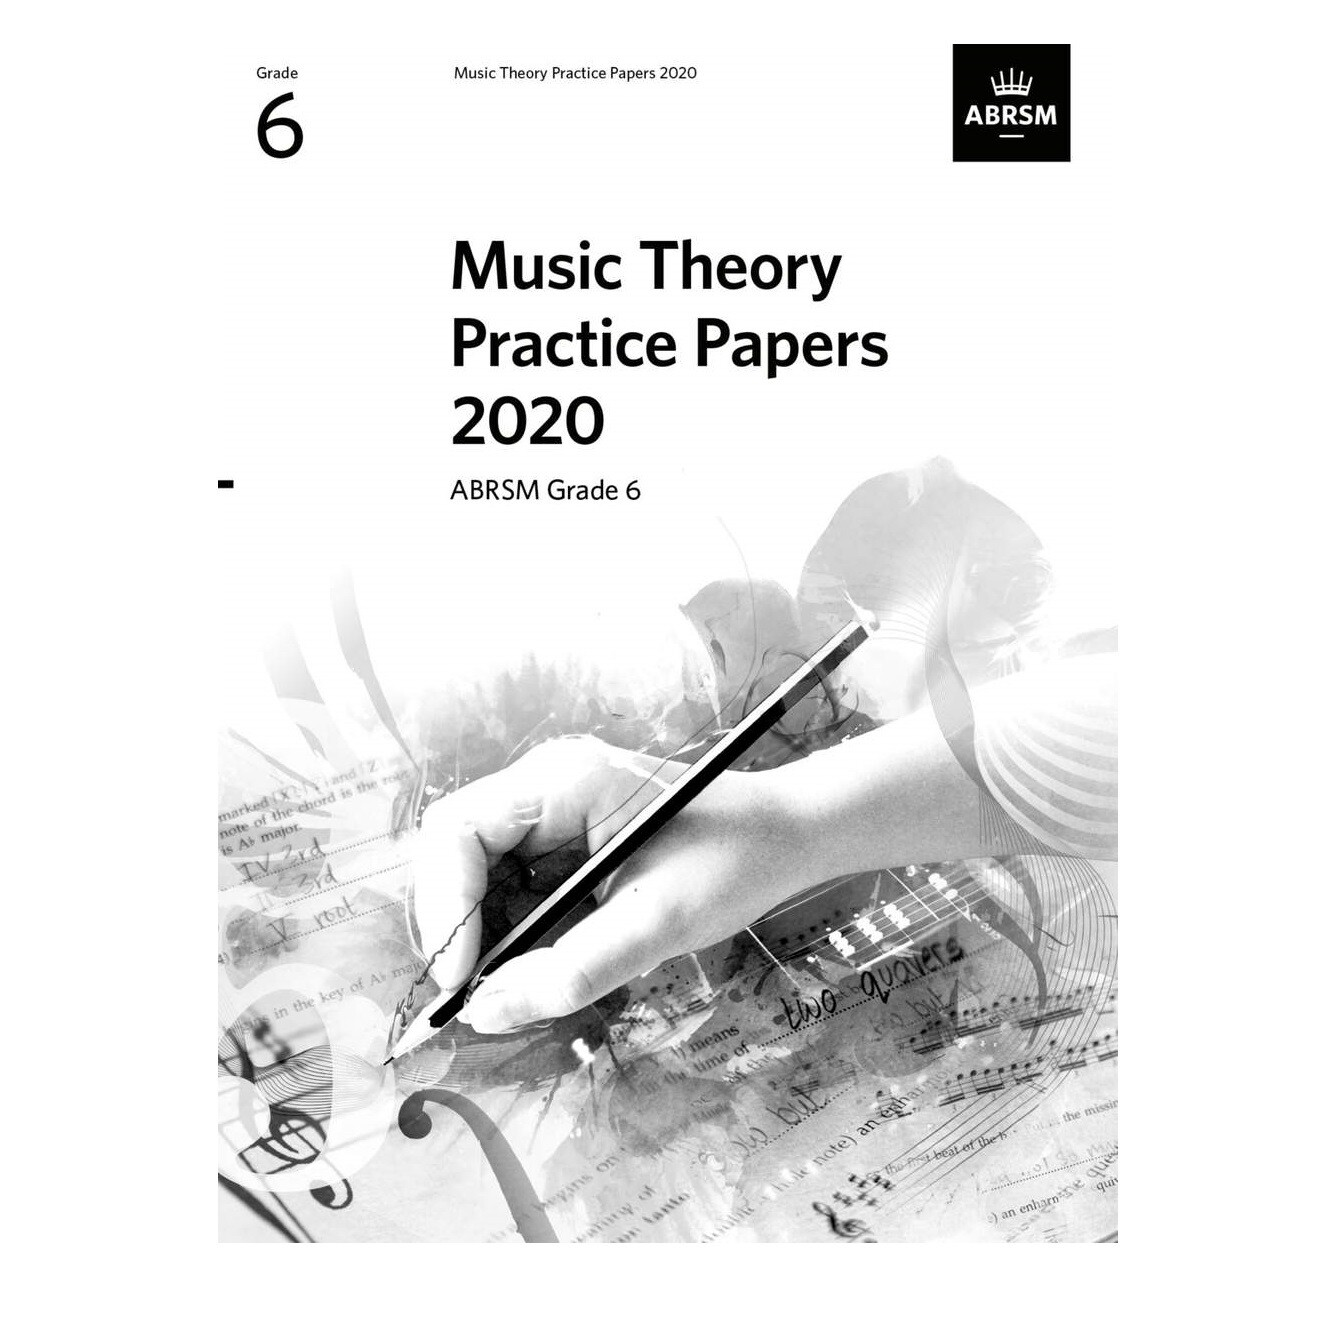 ABRSM Music Theory Practice Papers (new 2020 format) - Grade 6